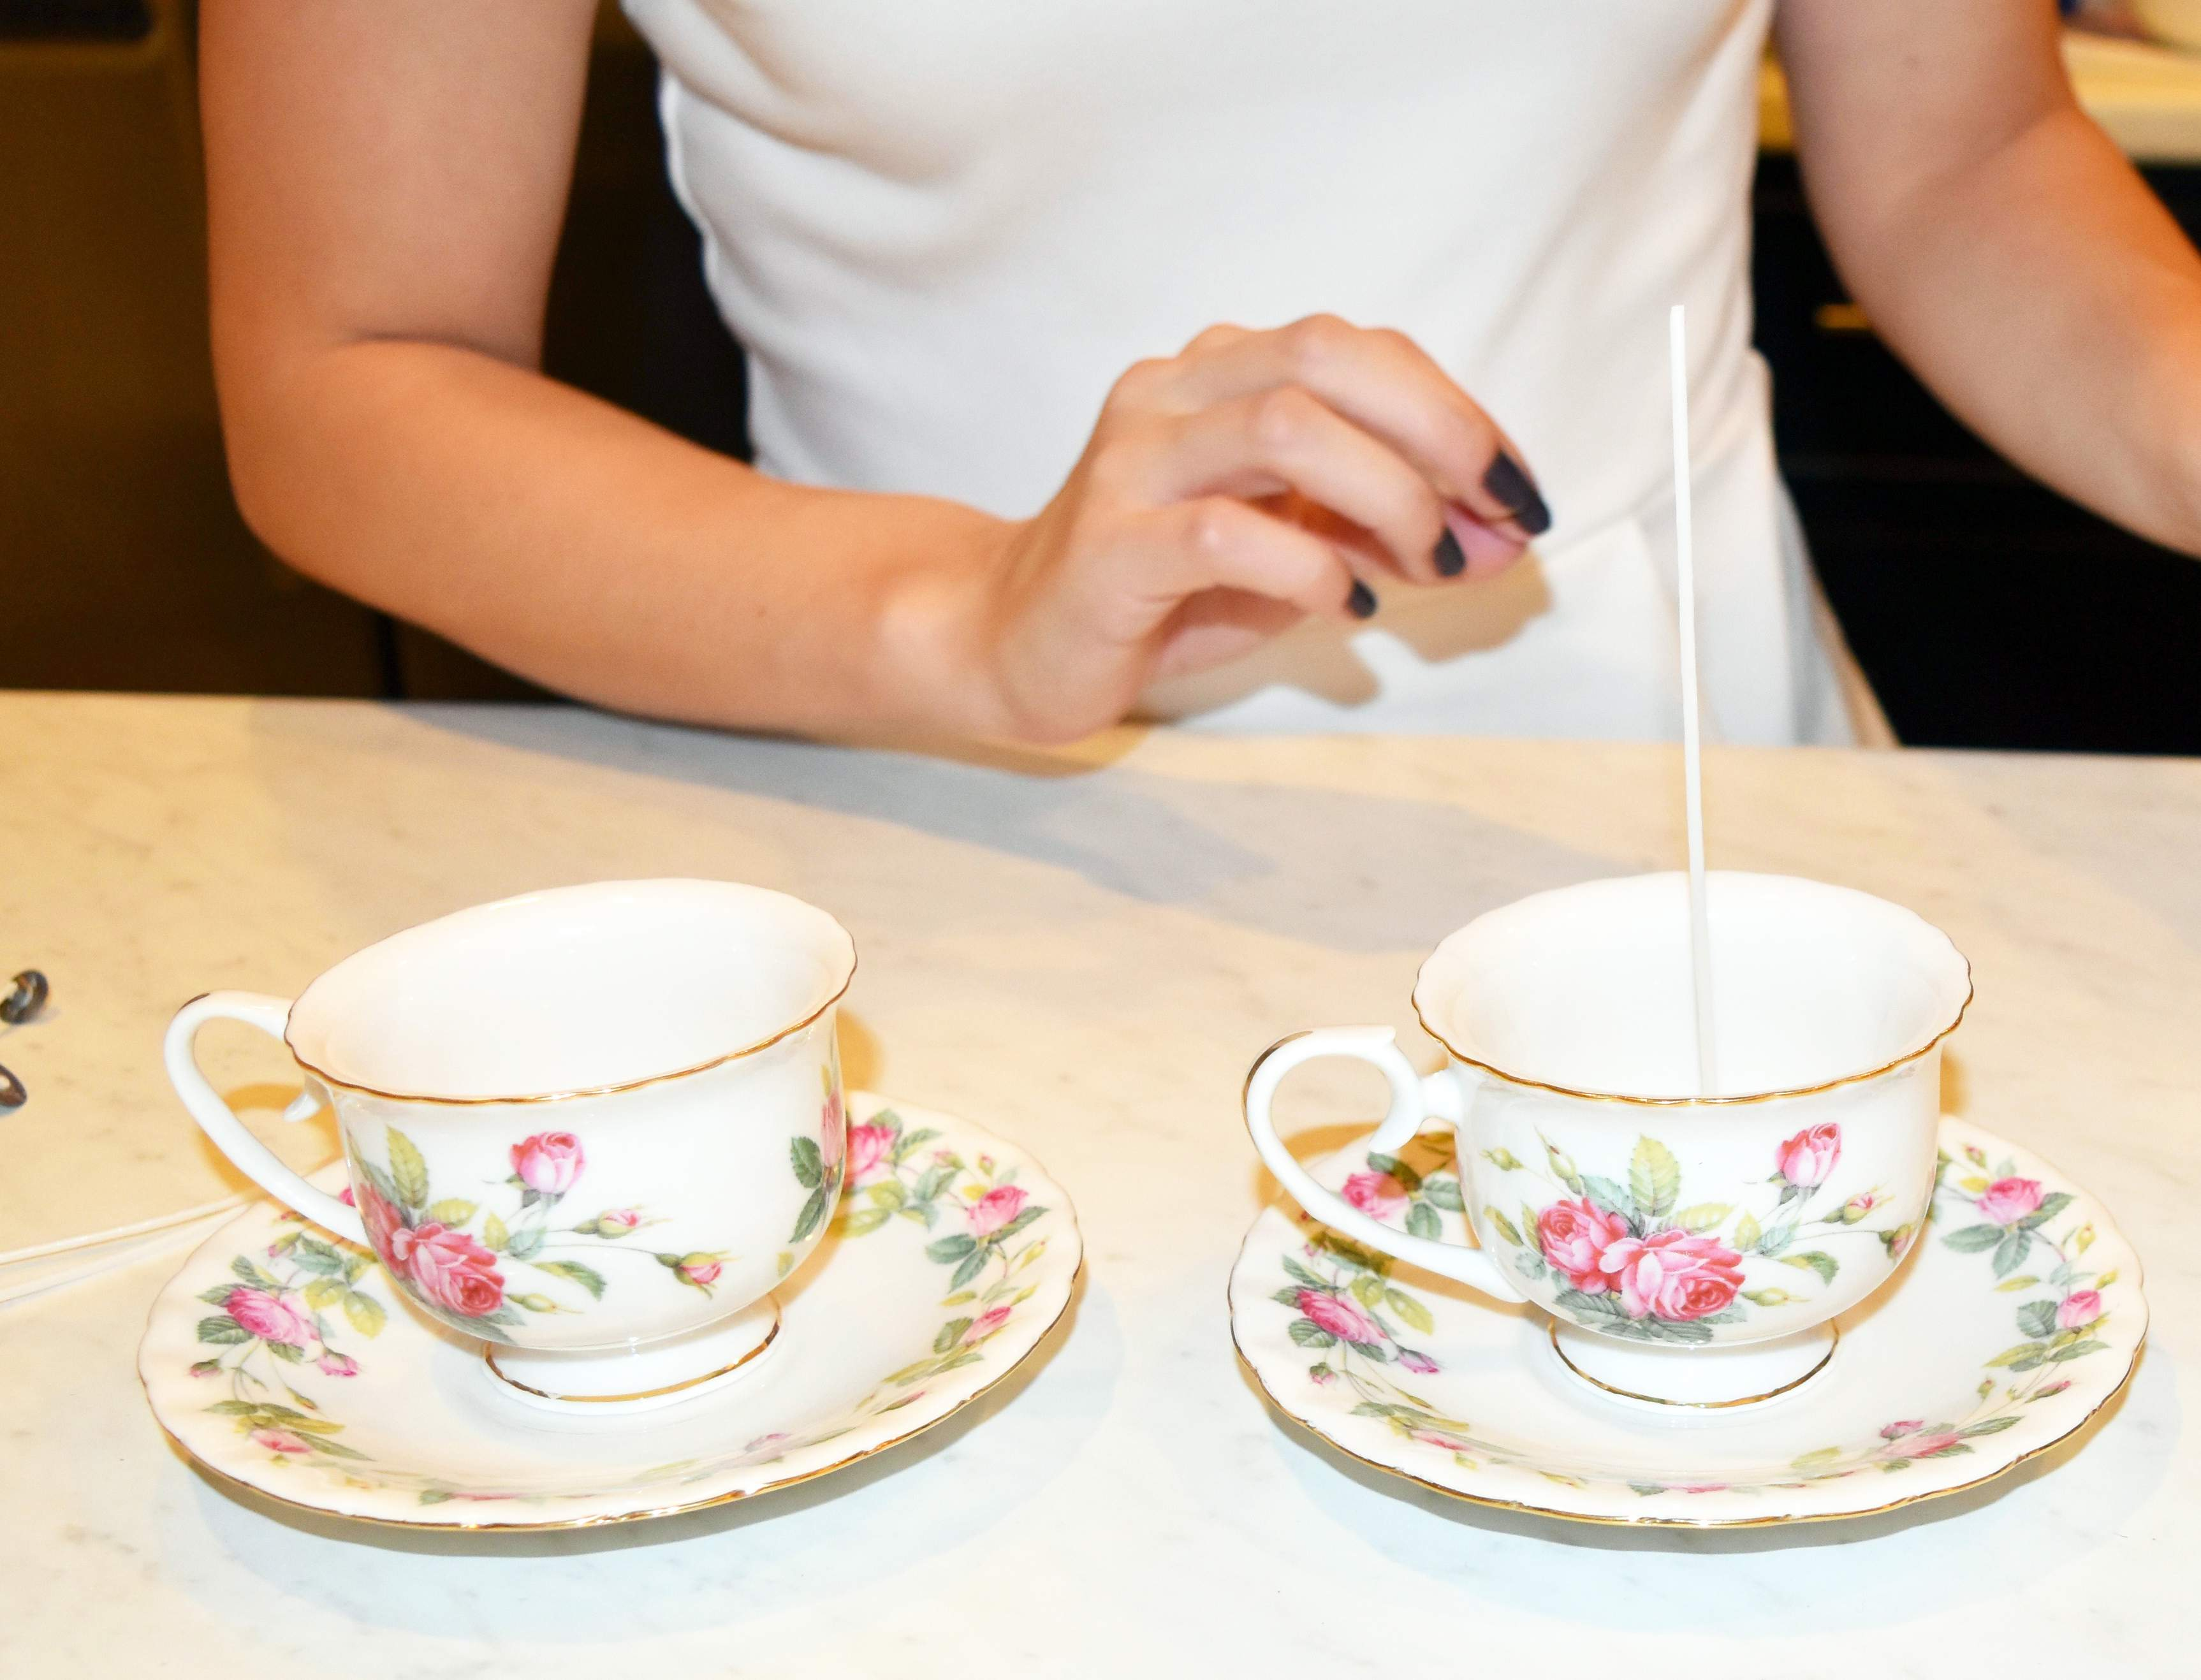 DIY Teacup Candles 14